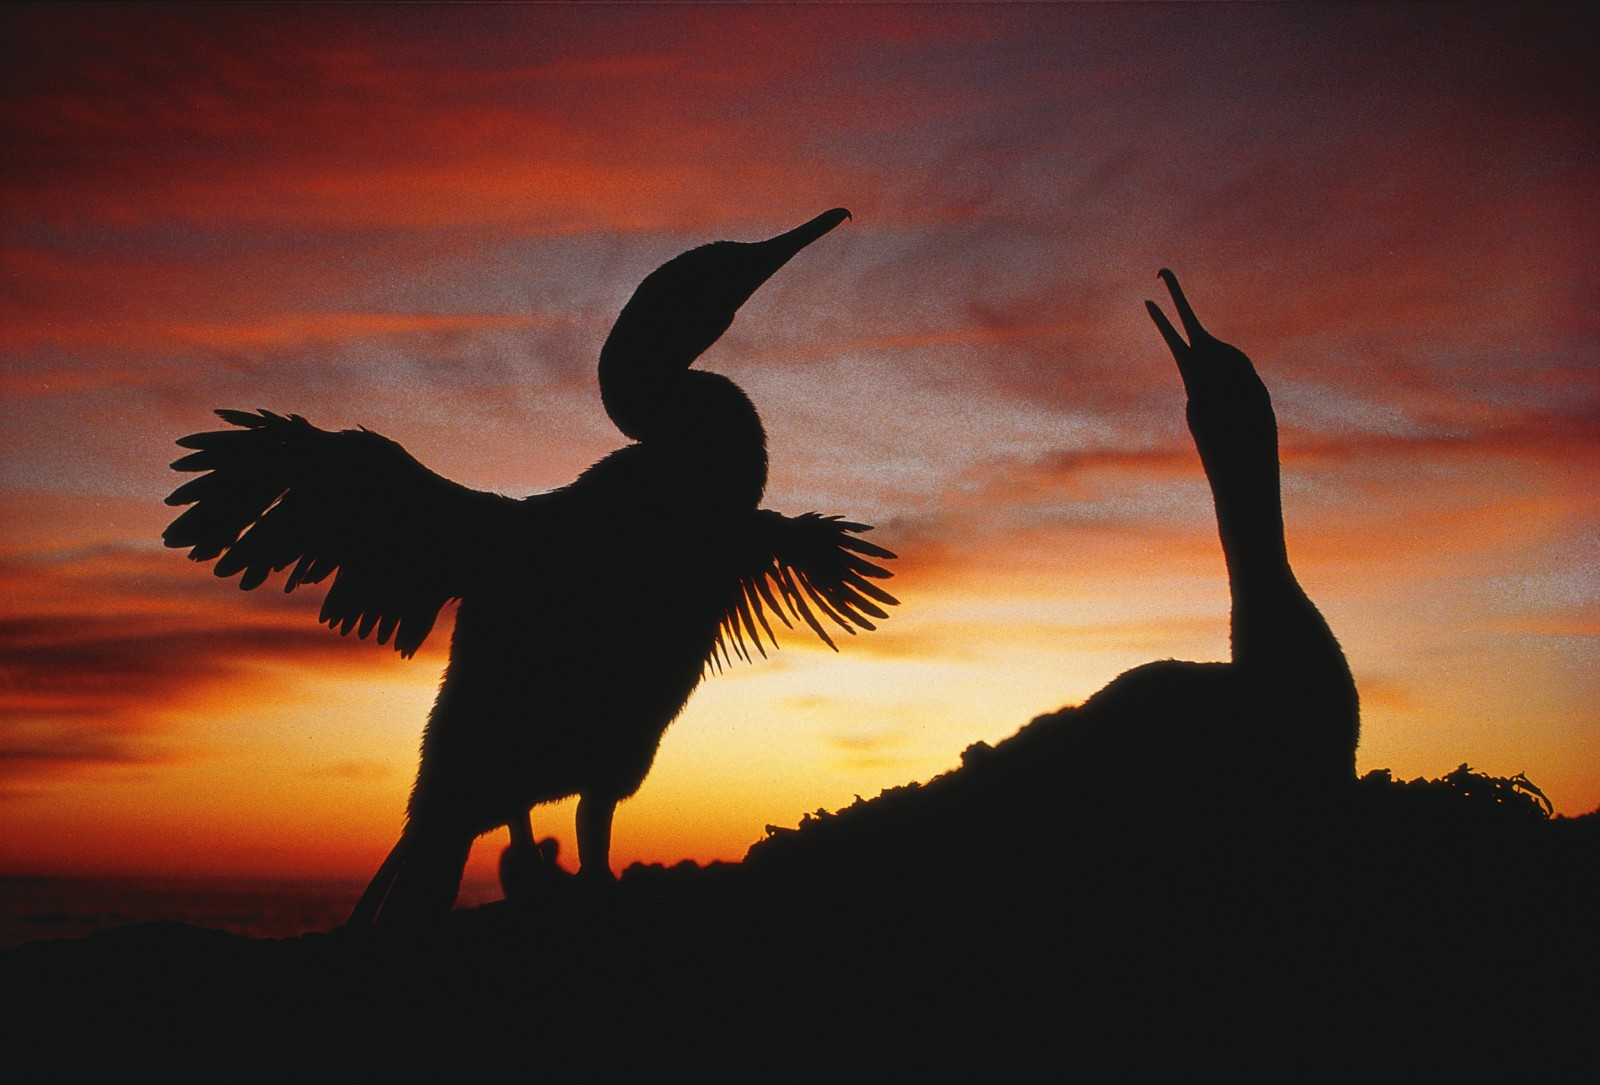 Like many flightless birds, the Galapagos cormorant seems to be holding on—just. Dogs attack them, fishing in the area threatens their food supply and fishing equipment entangles them. Do they yearn that those vestigial wings could again transport them to richer, safer domains?